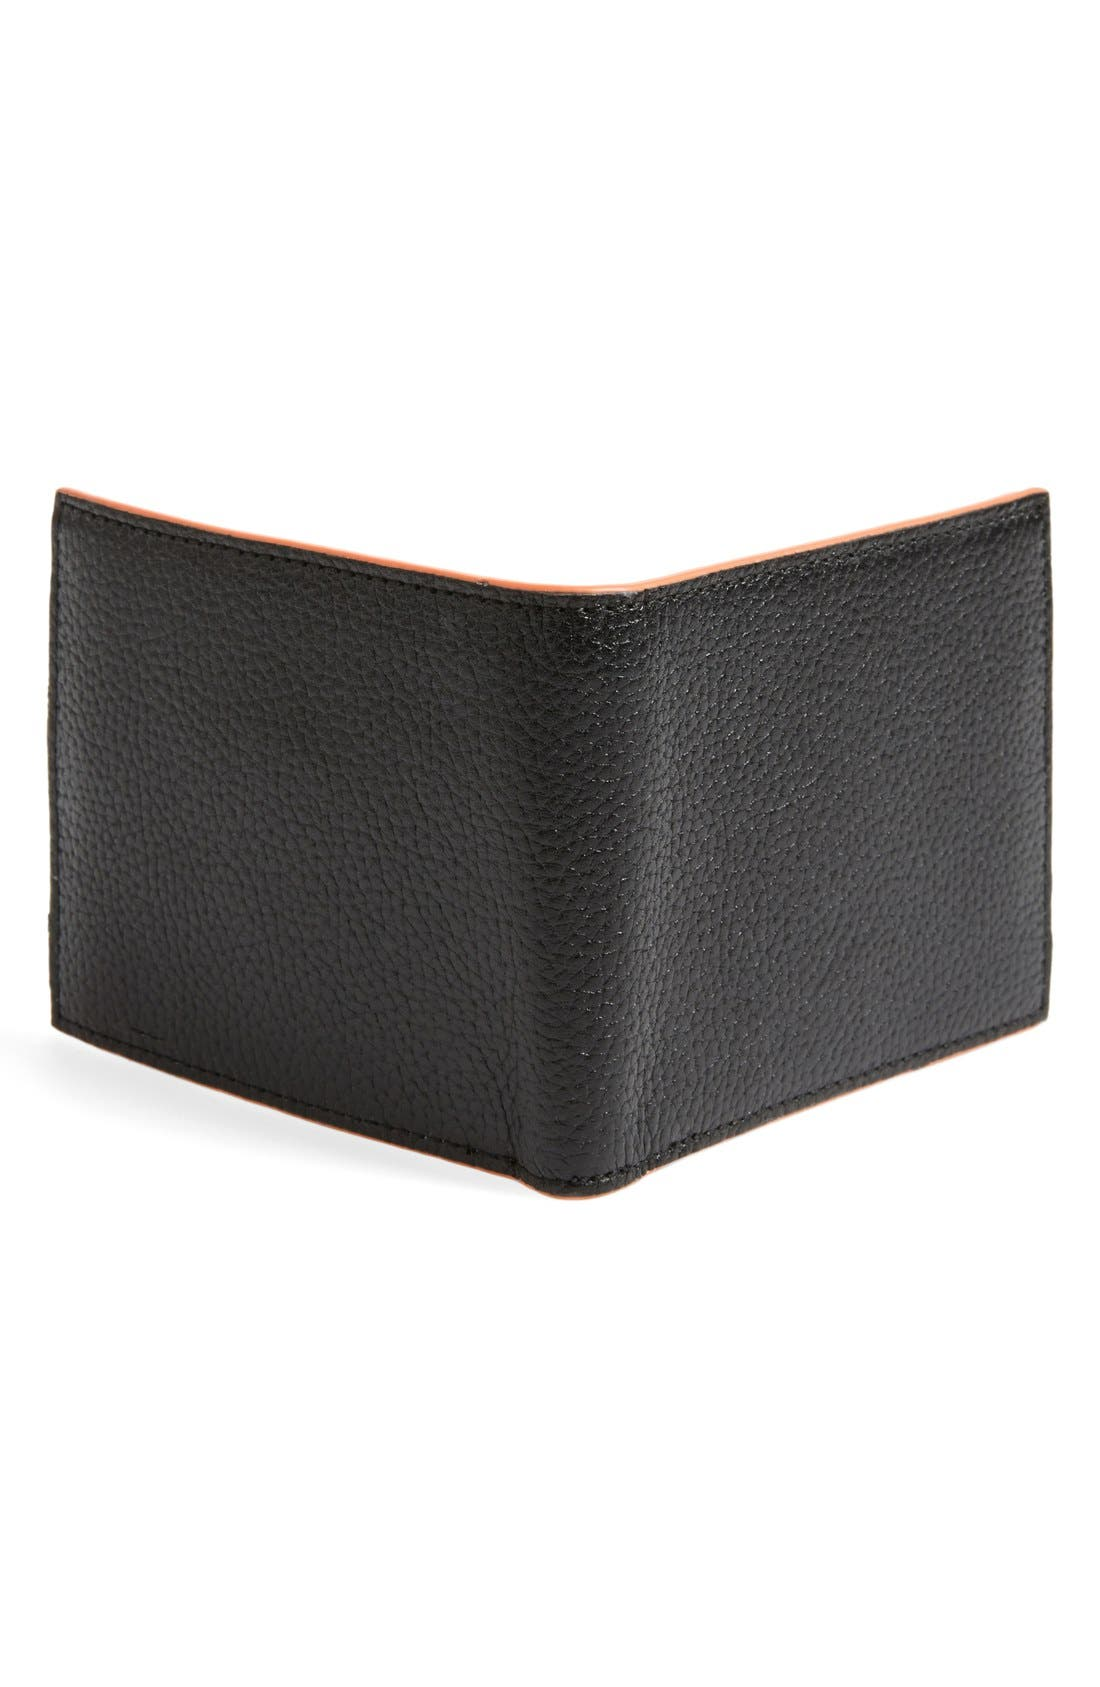 Alternate Image 3  - Jack Spade 'Mason' Leather Wallet